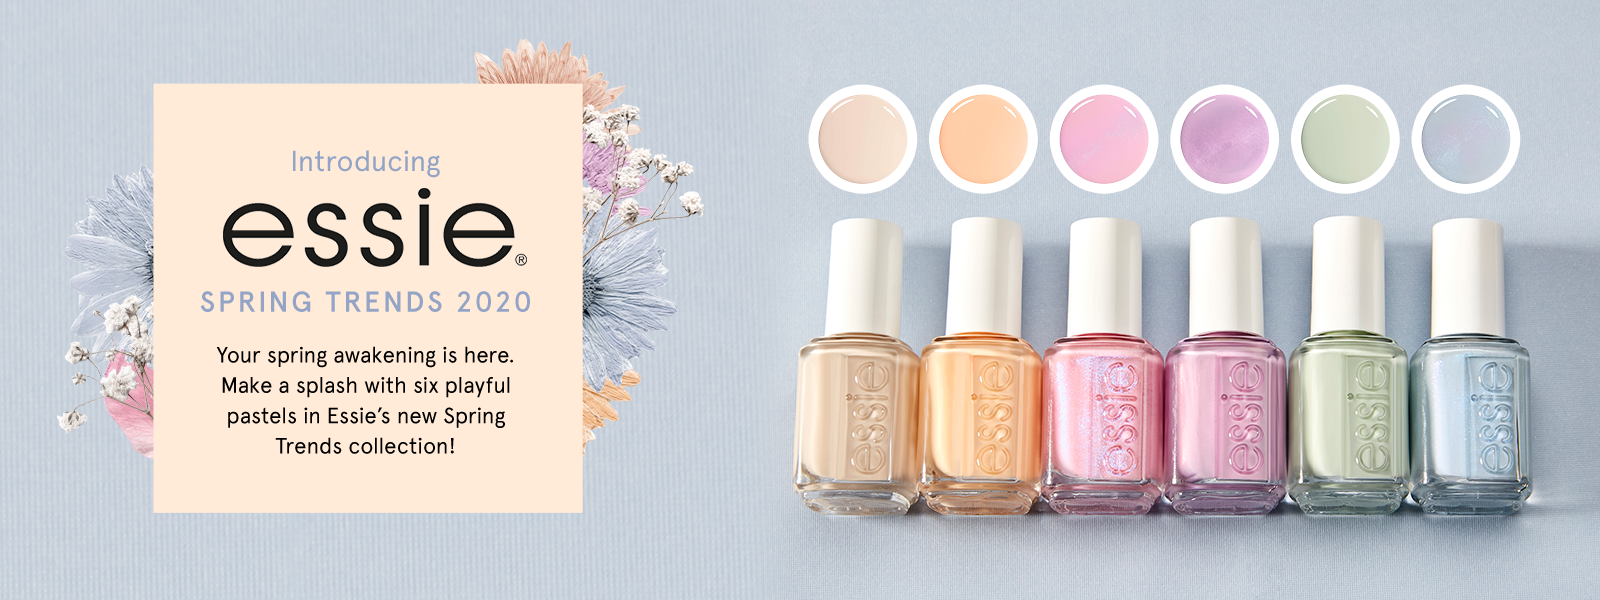 Essie Spring 2020 Collection - Essie Nail Polish